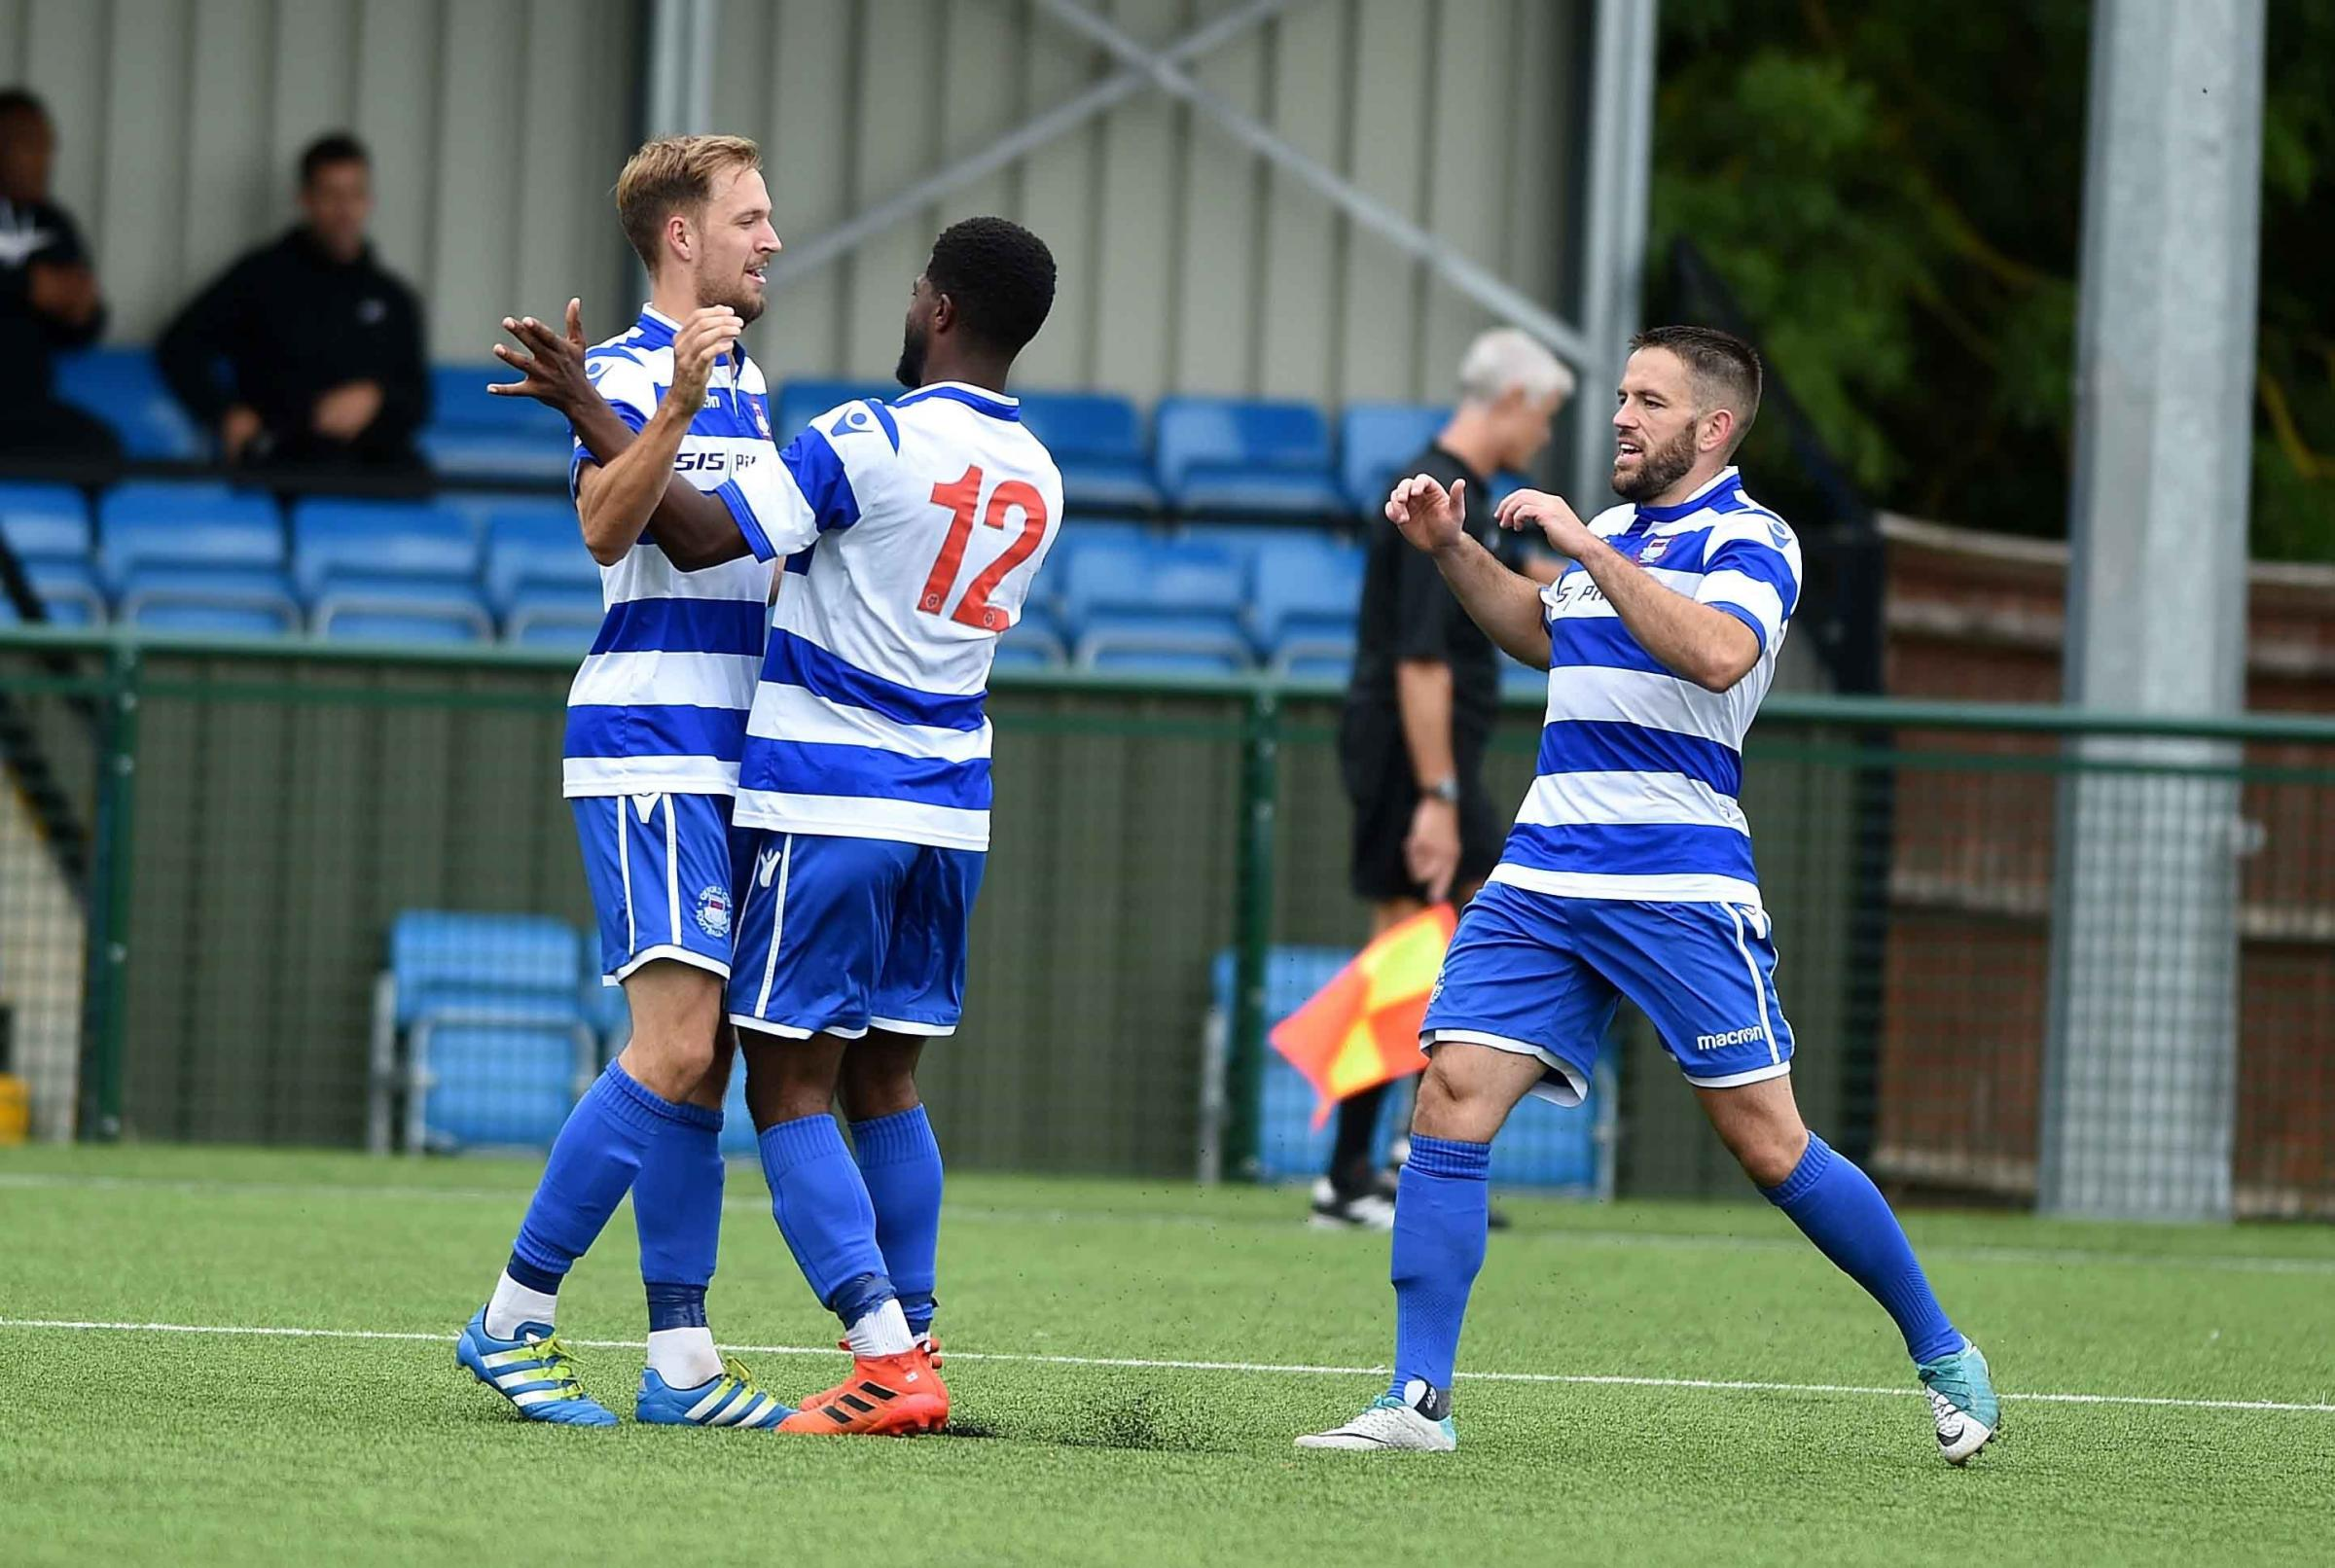 City vs St Albans: City goal #2 as Reece Fleet congratulated by Kyran Wiltshire and Eddie Jones